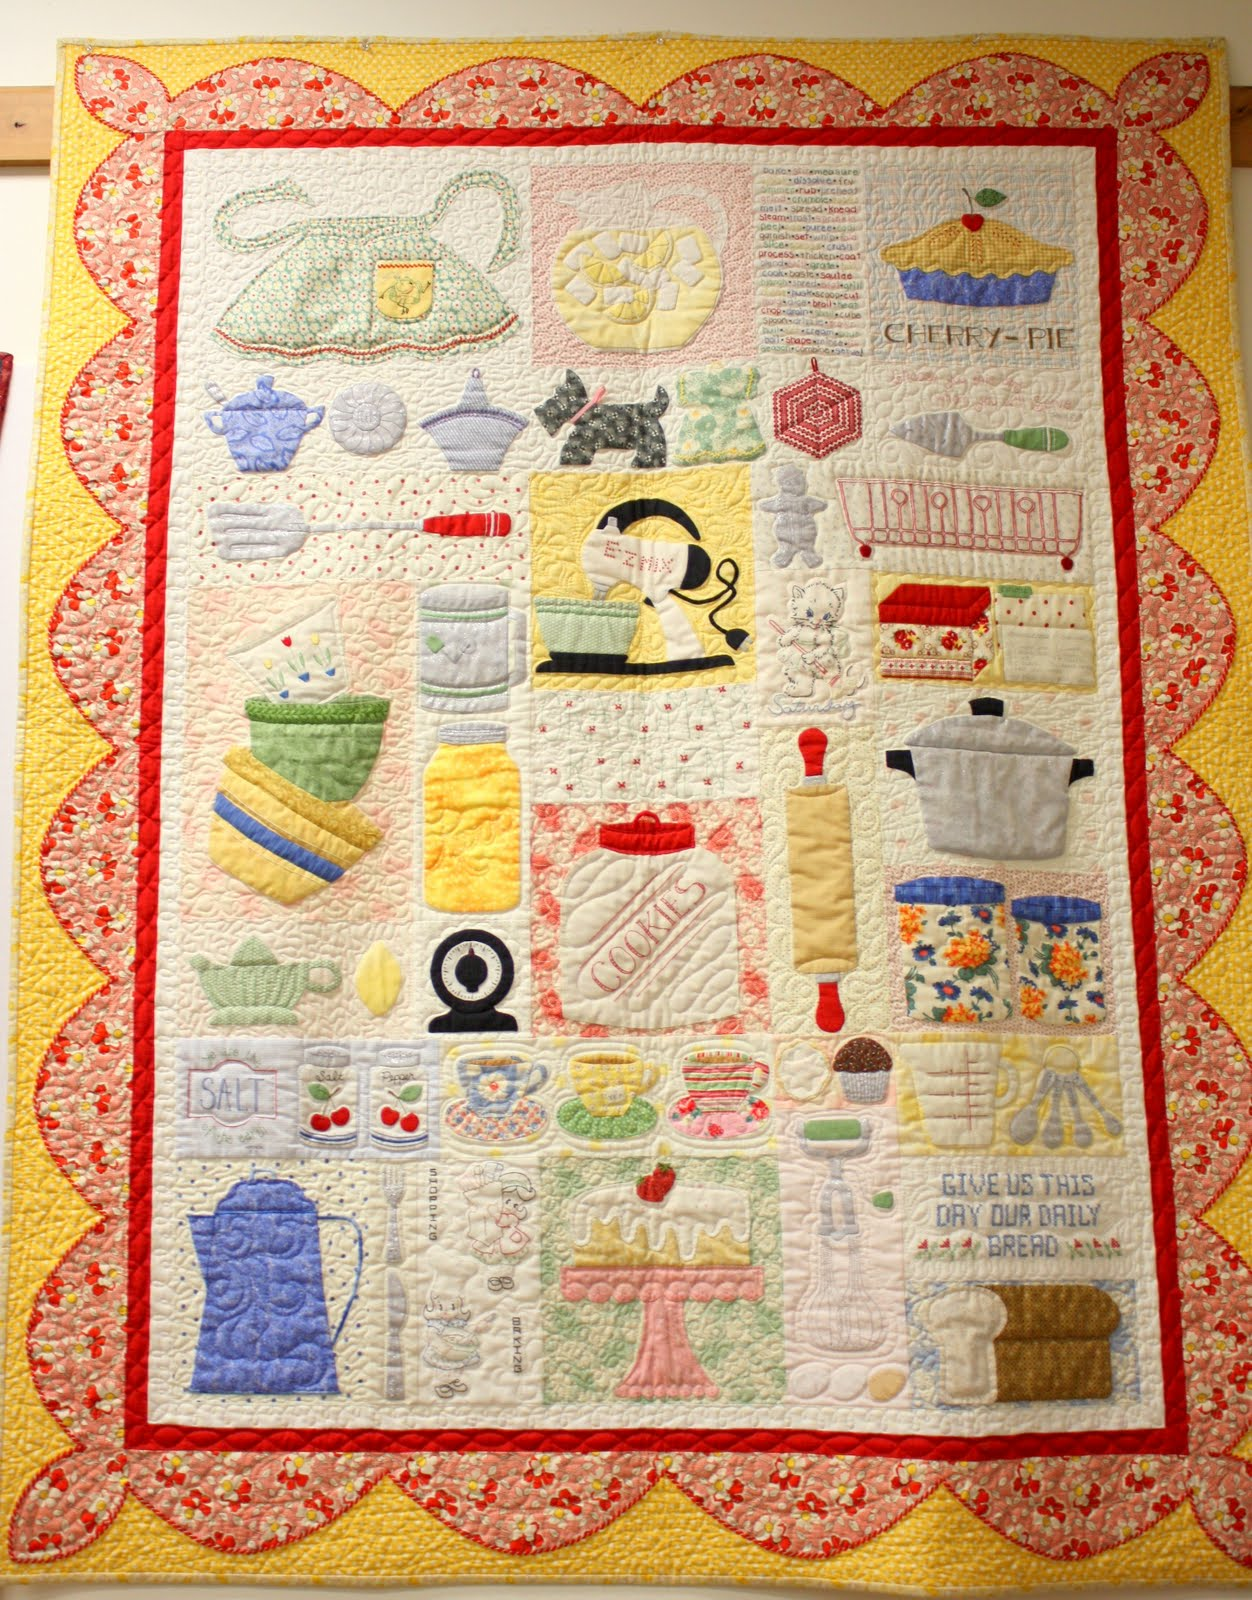 Lori holt quilter extrordinaire diary of a quilter a for Kitchen quilting ideas